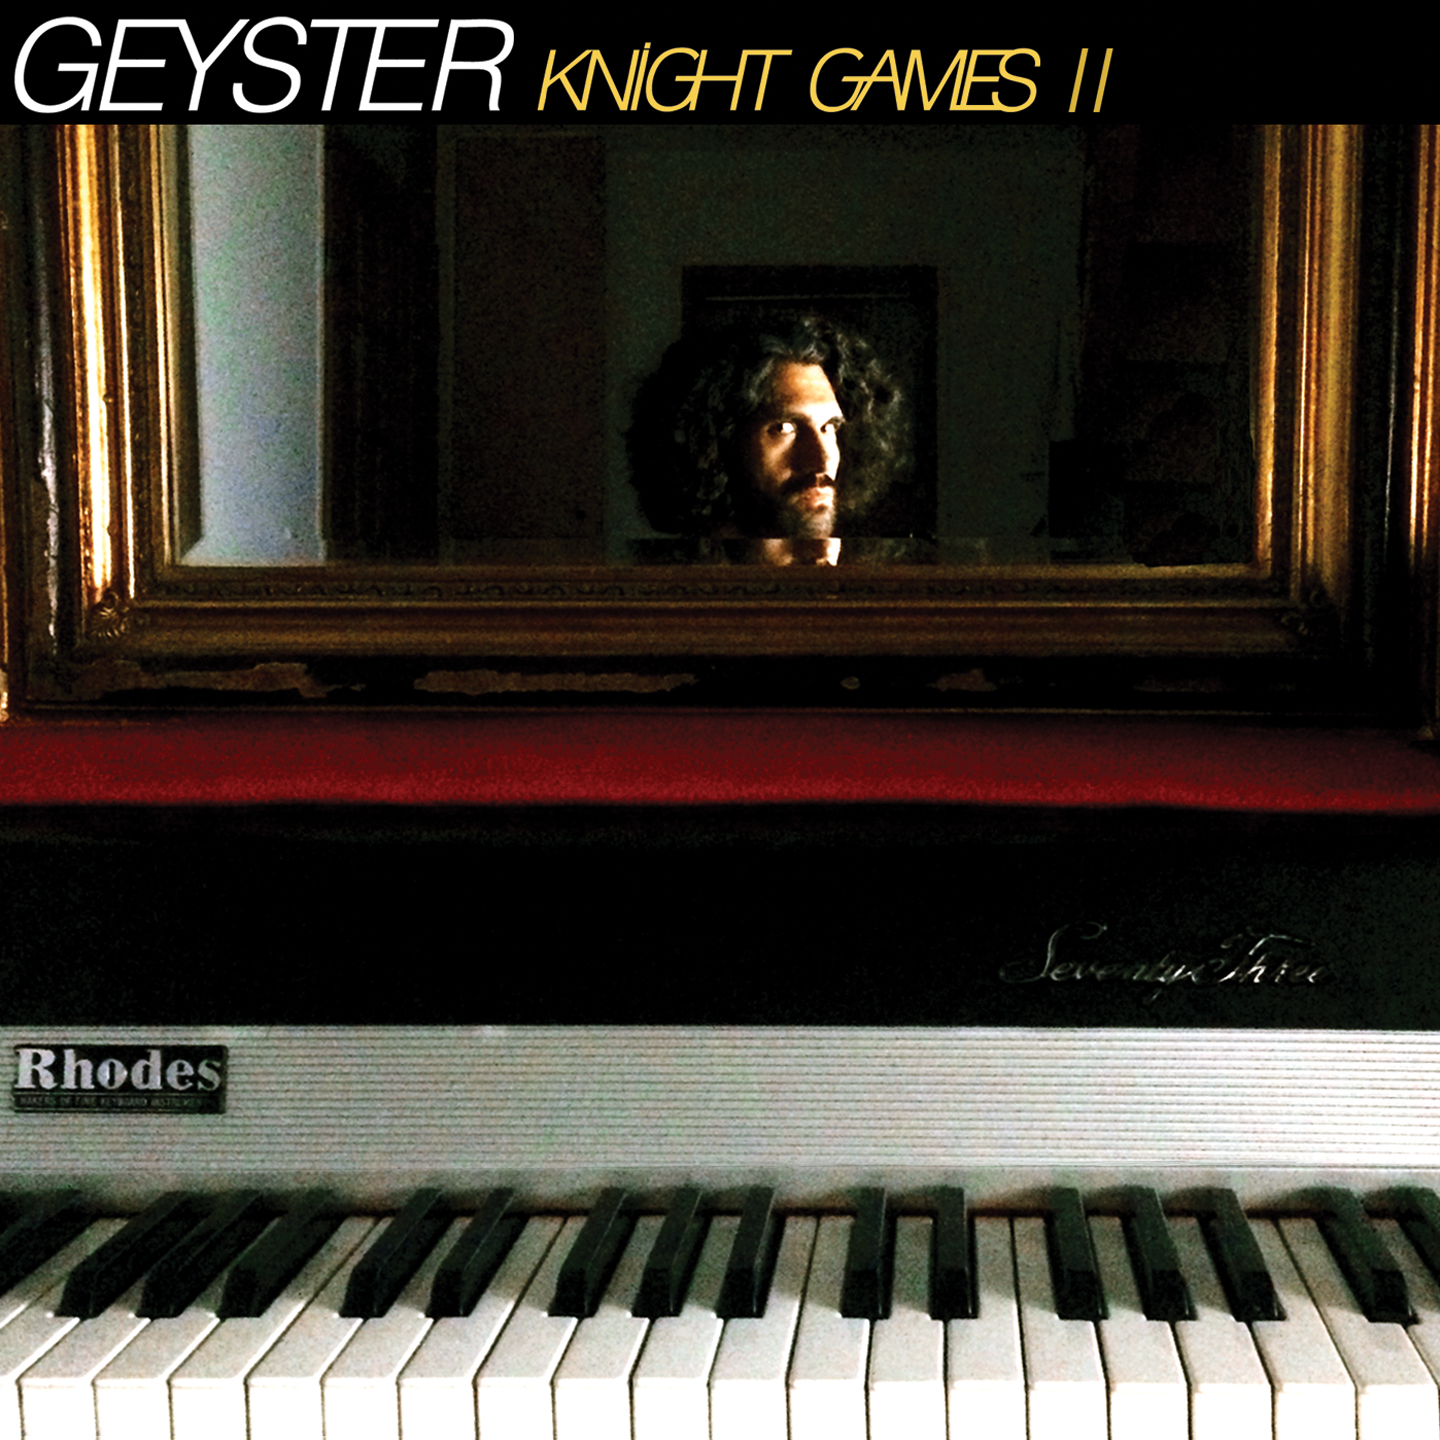 Geyster - Knight Games II